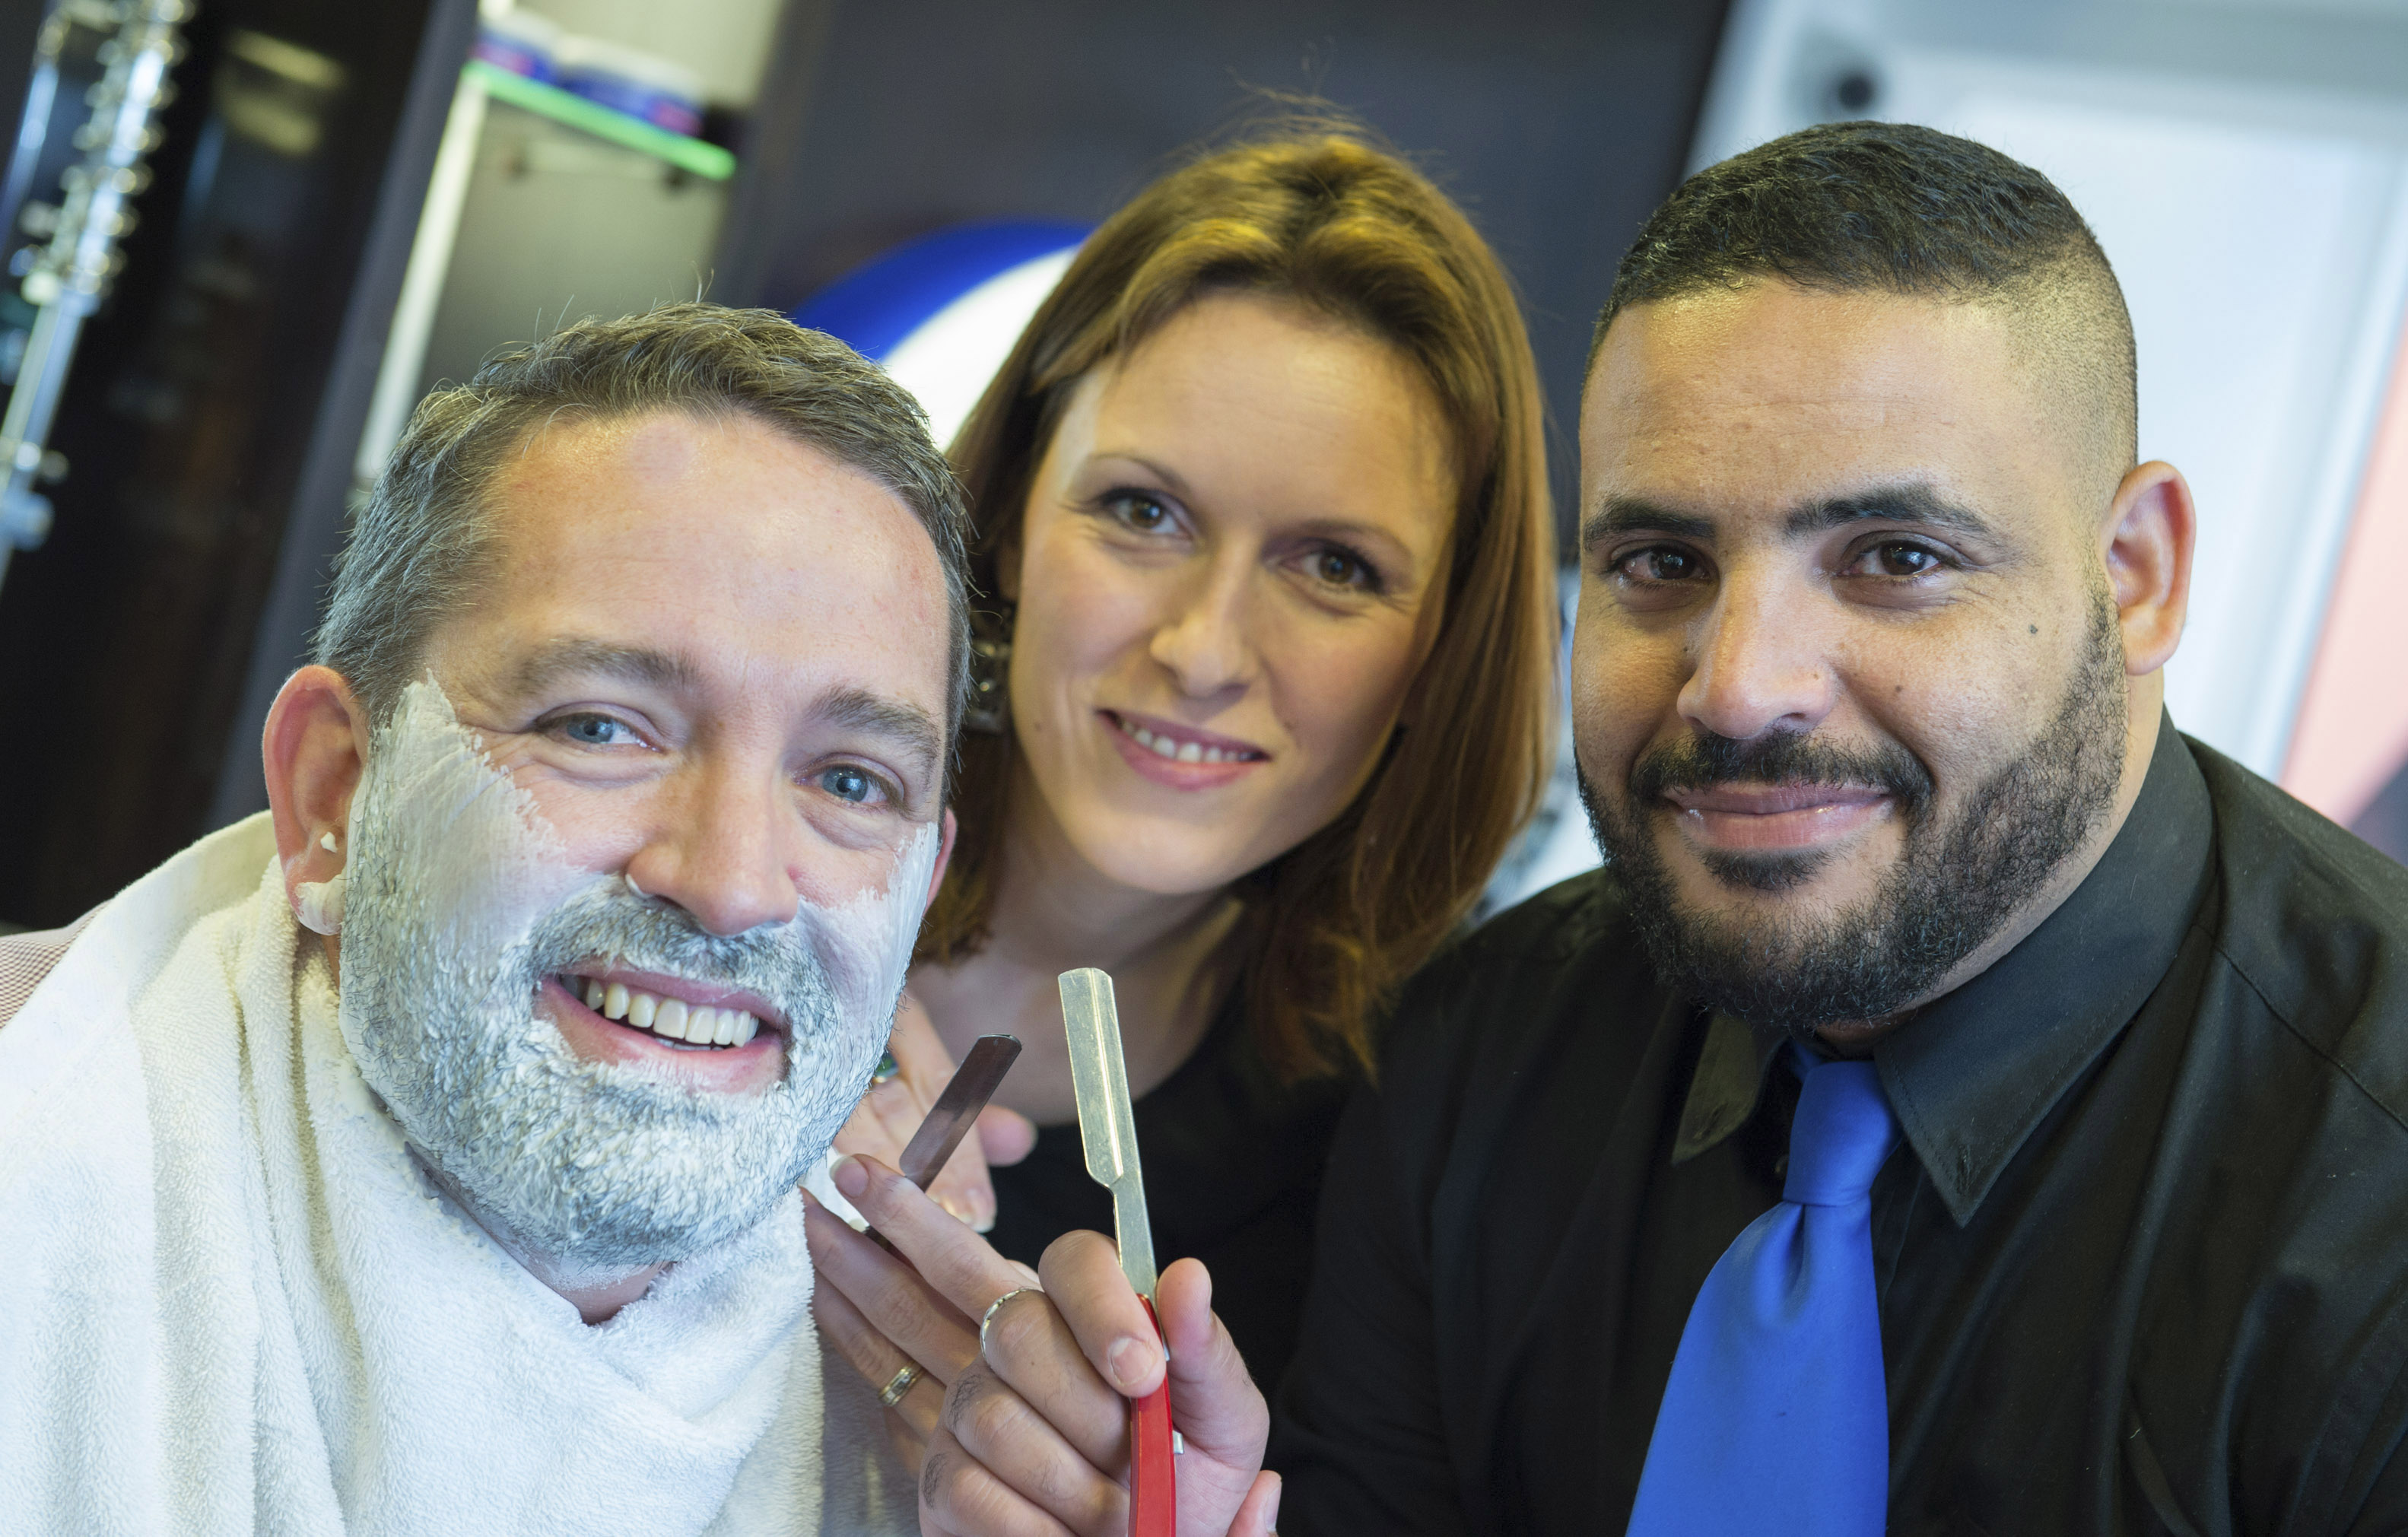 Corkmen encouraged to shave off beards to raise money for Cancer services